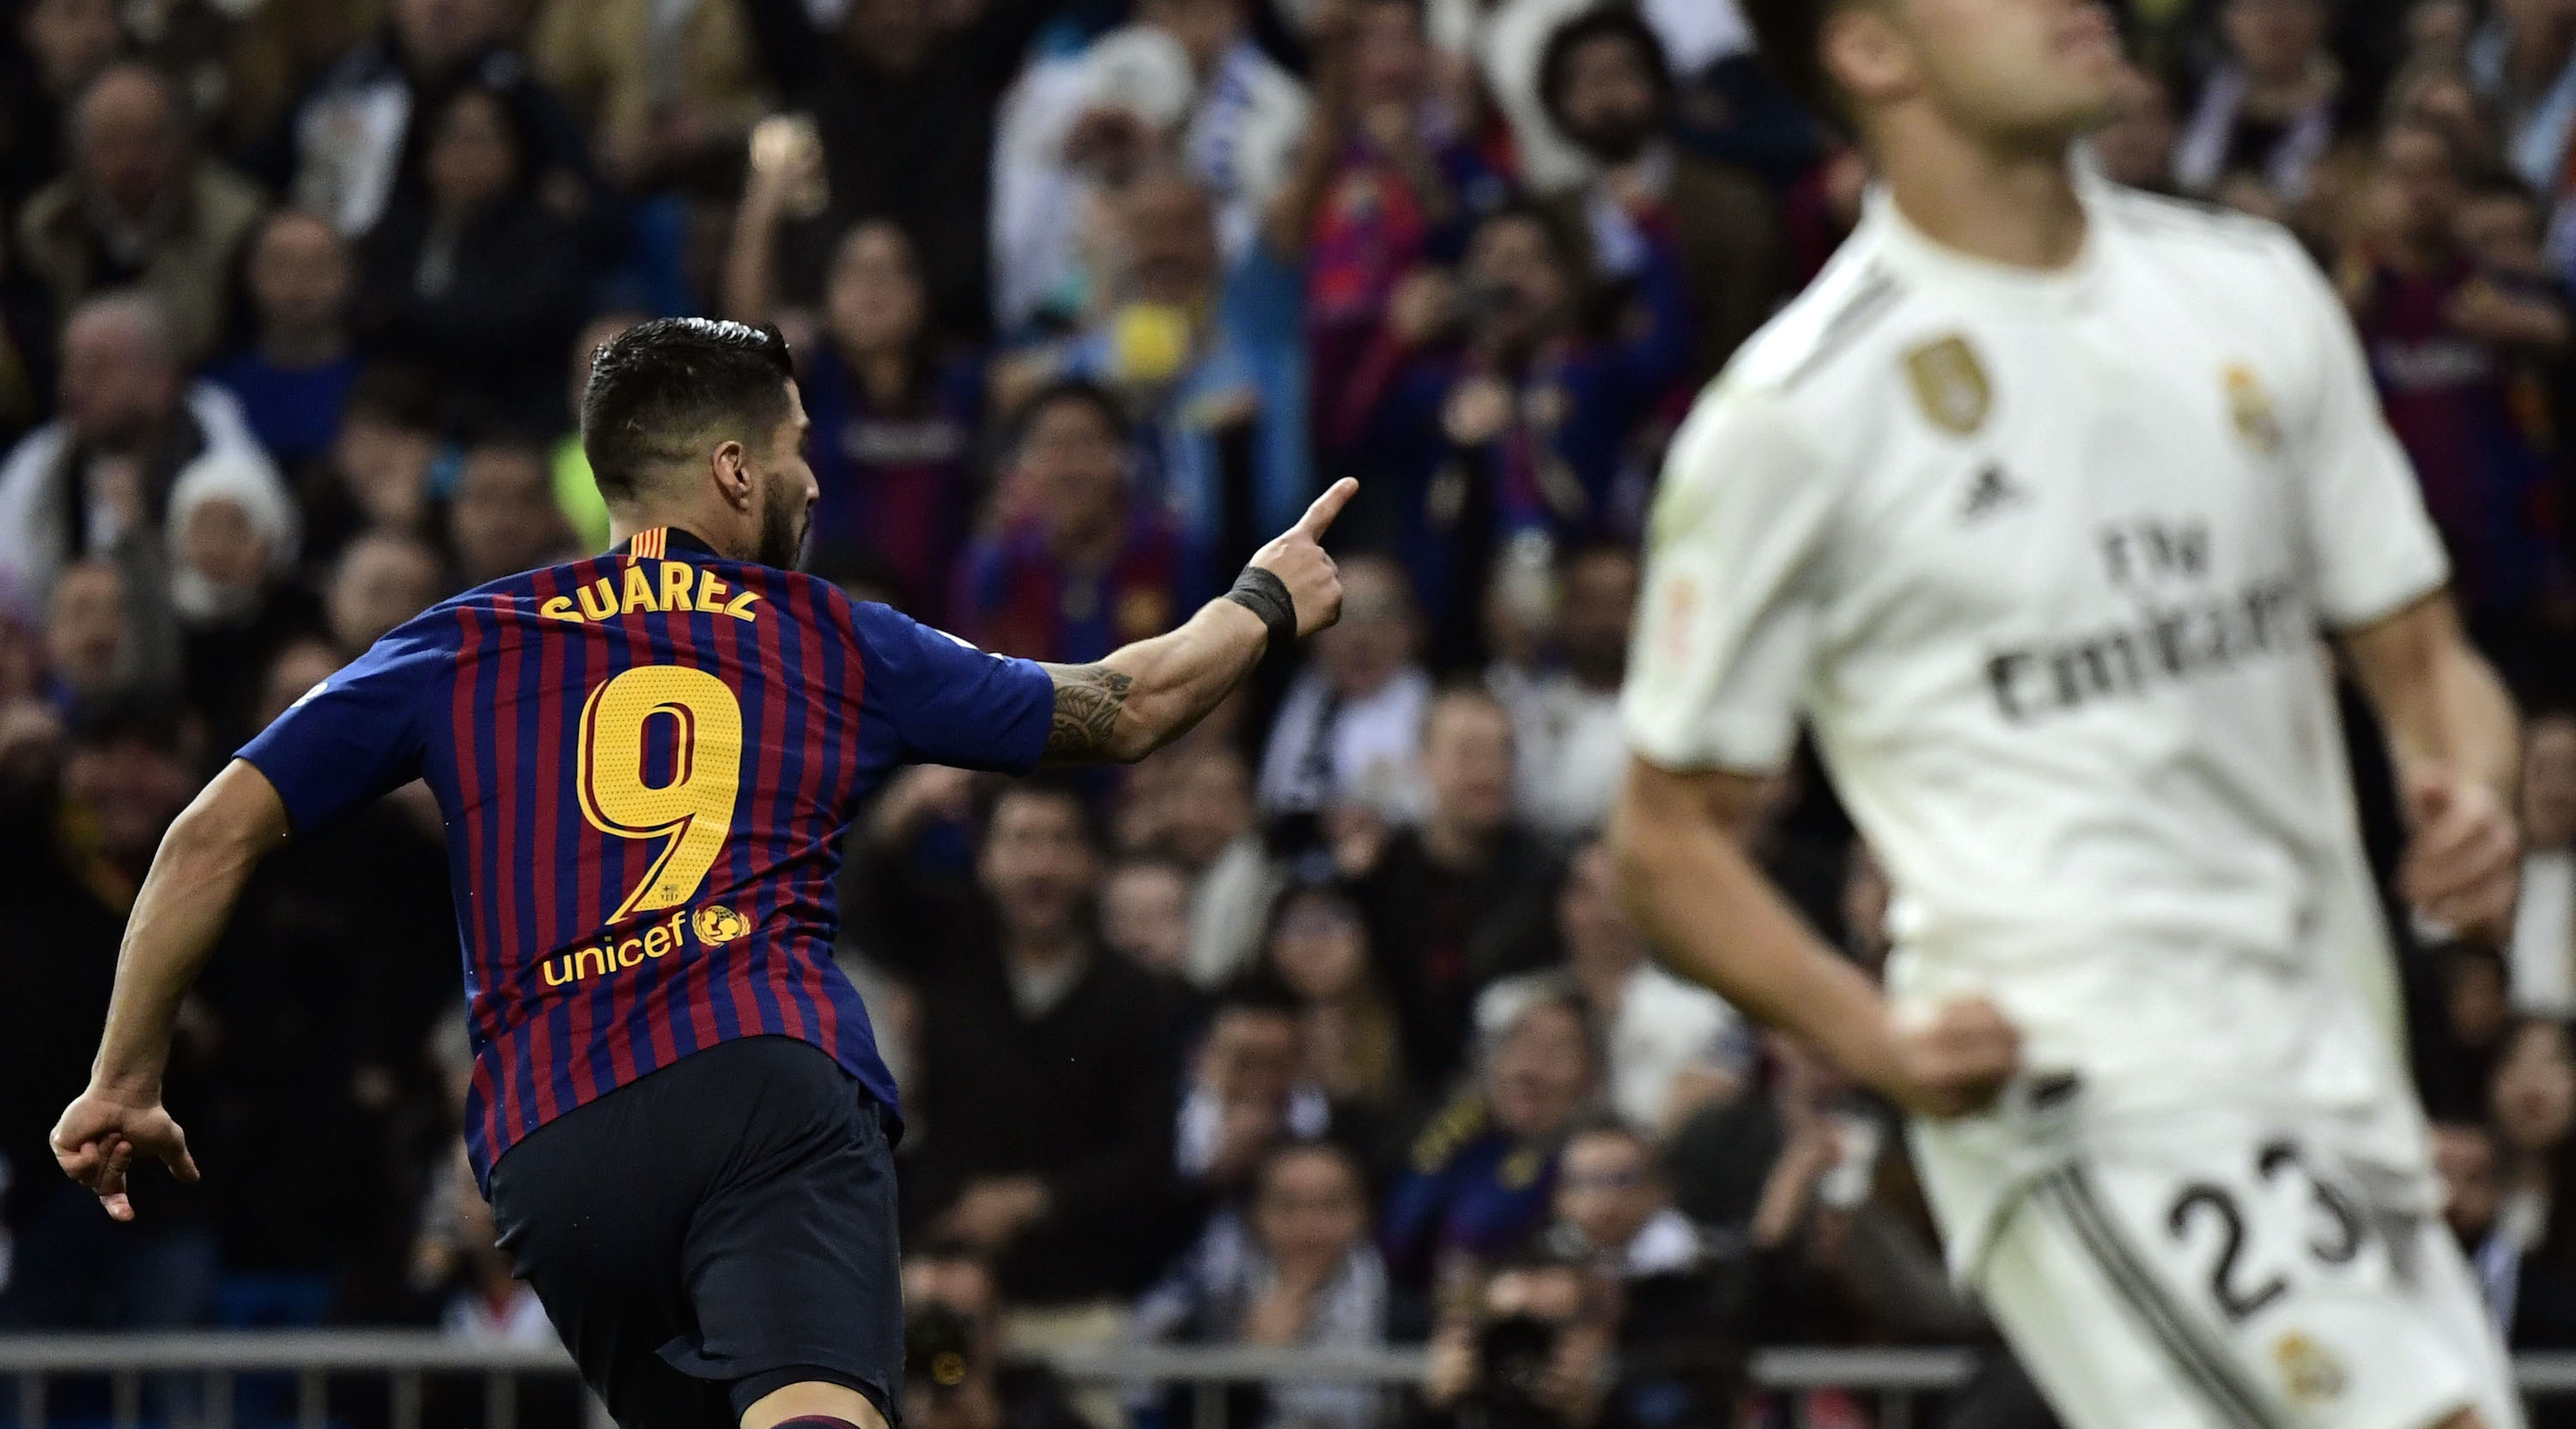 Barcelona's Uruguayan forward Luis Suarez celebrates his goal during the Spanish Copa del Rey (King's Cup) semi-final second leg football match between Real Madrid and Barcelona at the Santiago Bernabeu stadium in Madrid on February 27, 2019. (Photo by JAVIER SORIANO / AFP) (Photo credit should read JAVIER SORIANO/AFP/Getty Images)